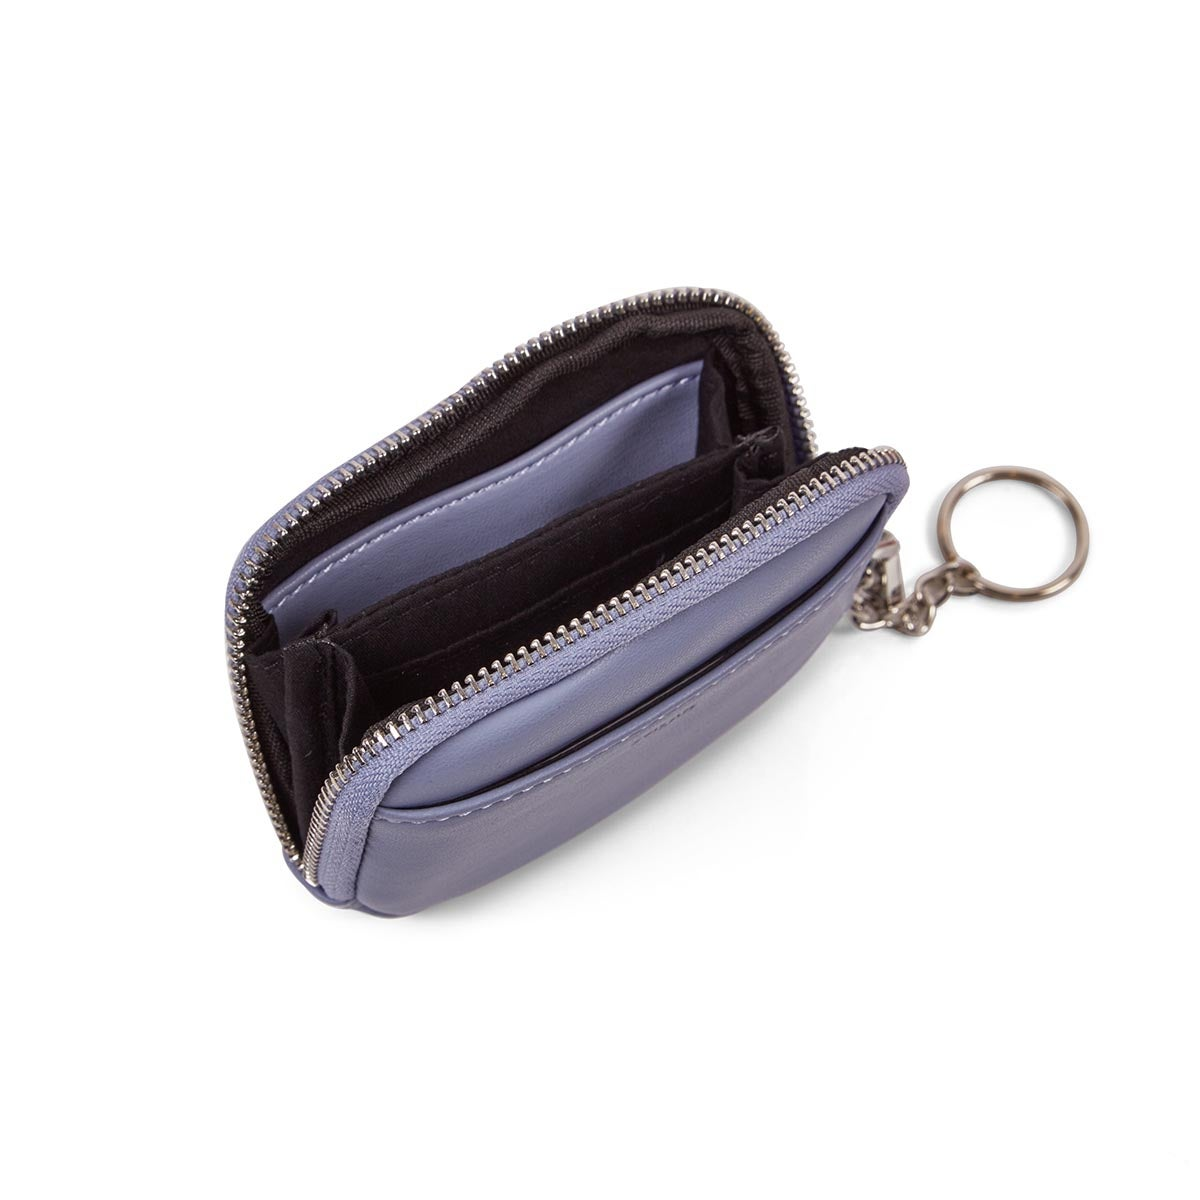 Lds periwinkle zip up wallet